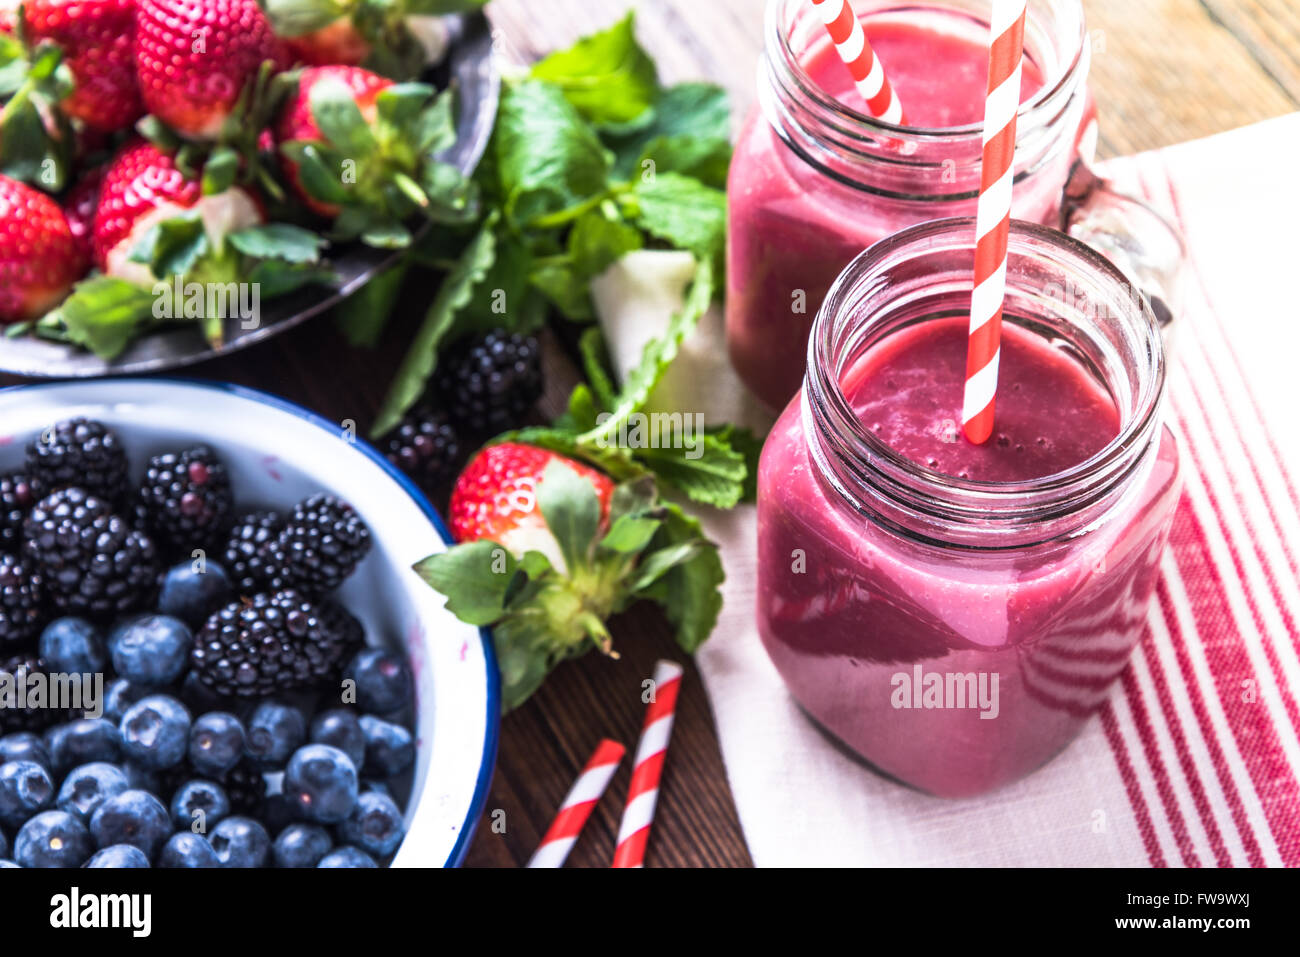 Well being and weight loss concept, berry smoothie.On wooden table with ingredients, from above. - Stock Image